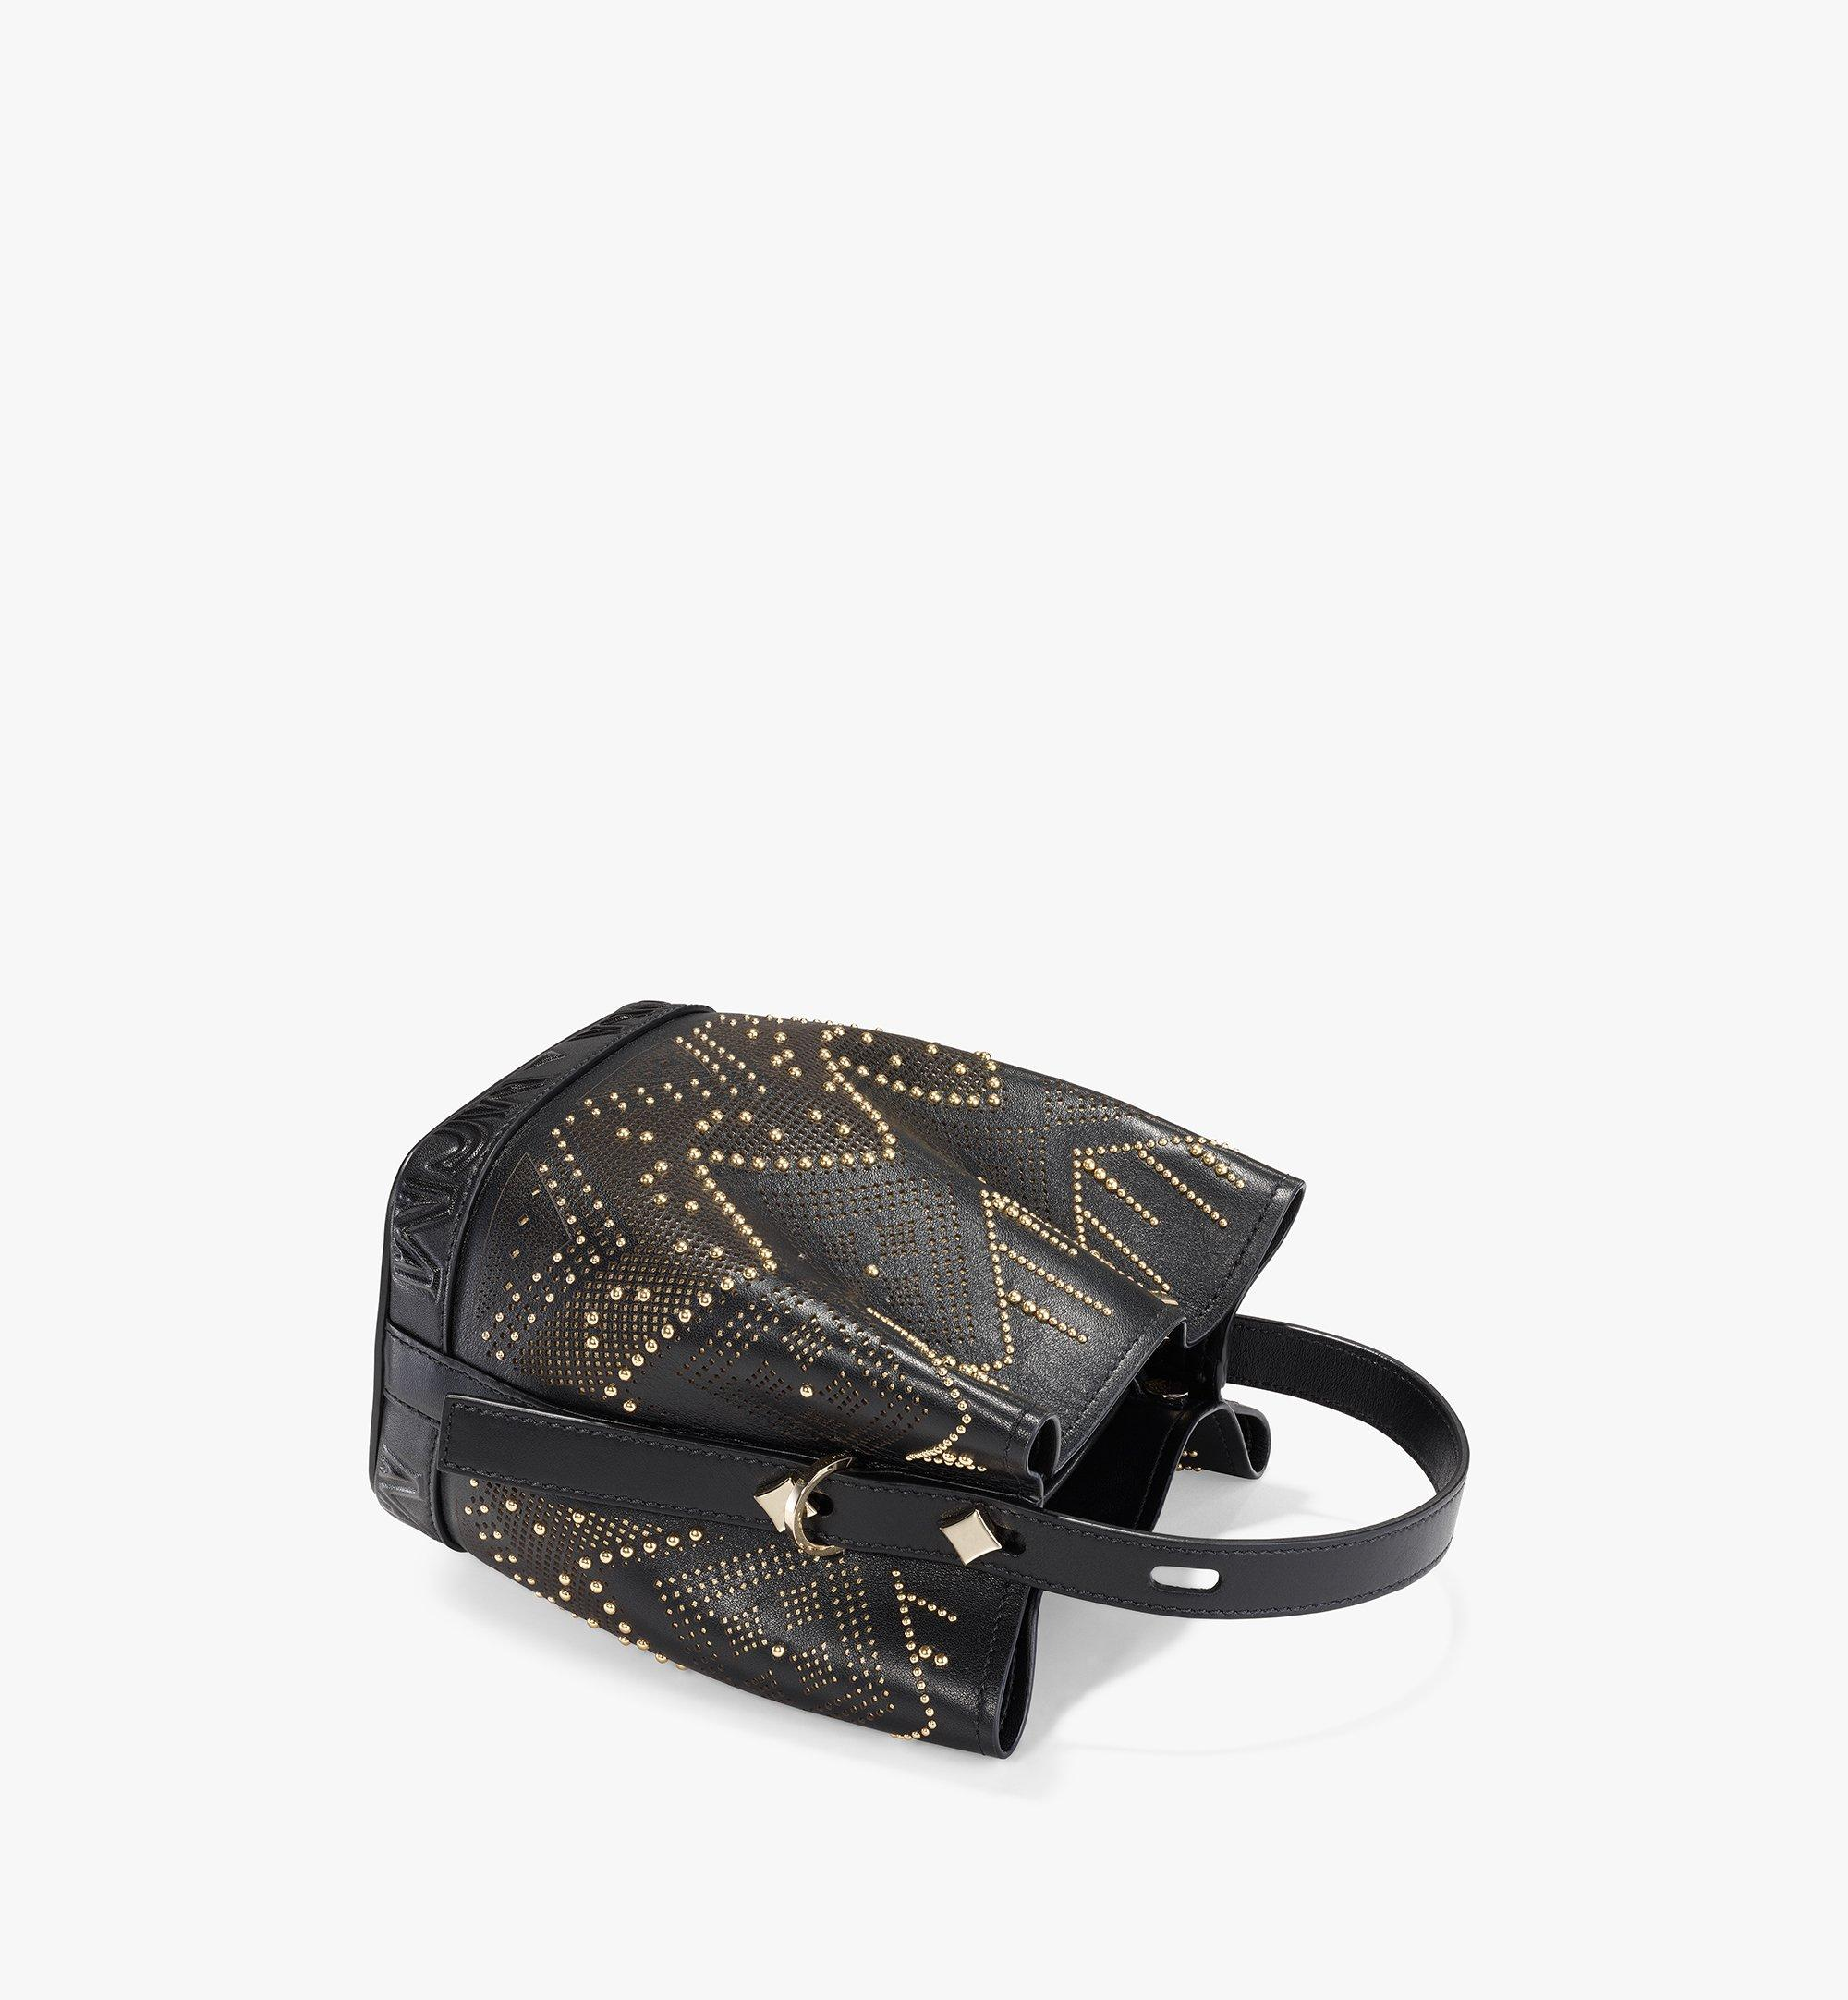 MCM Milano Lux Drawstring Bag in Studded Leather Black MWDAADA04BK001 Alternate View 3